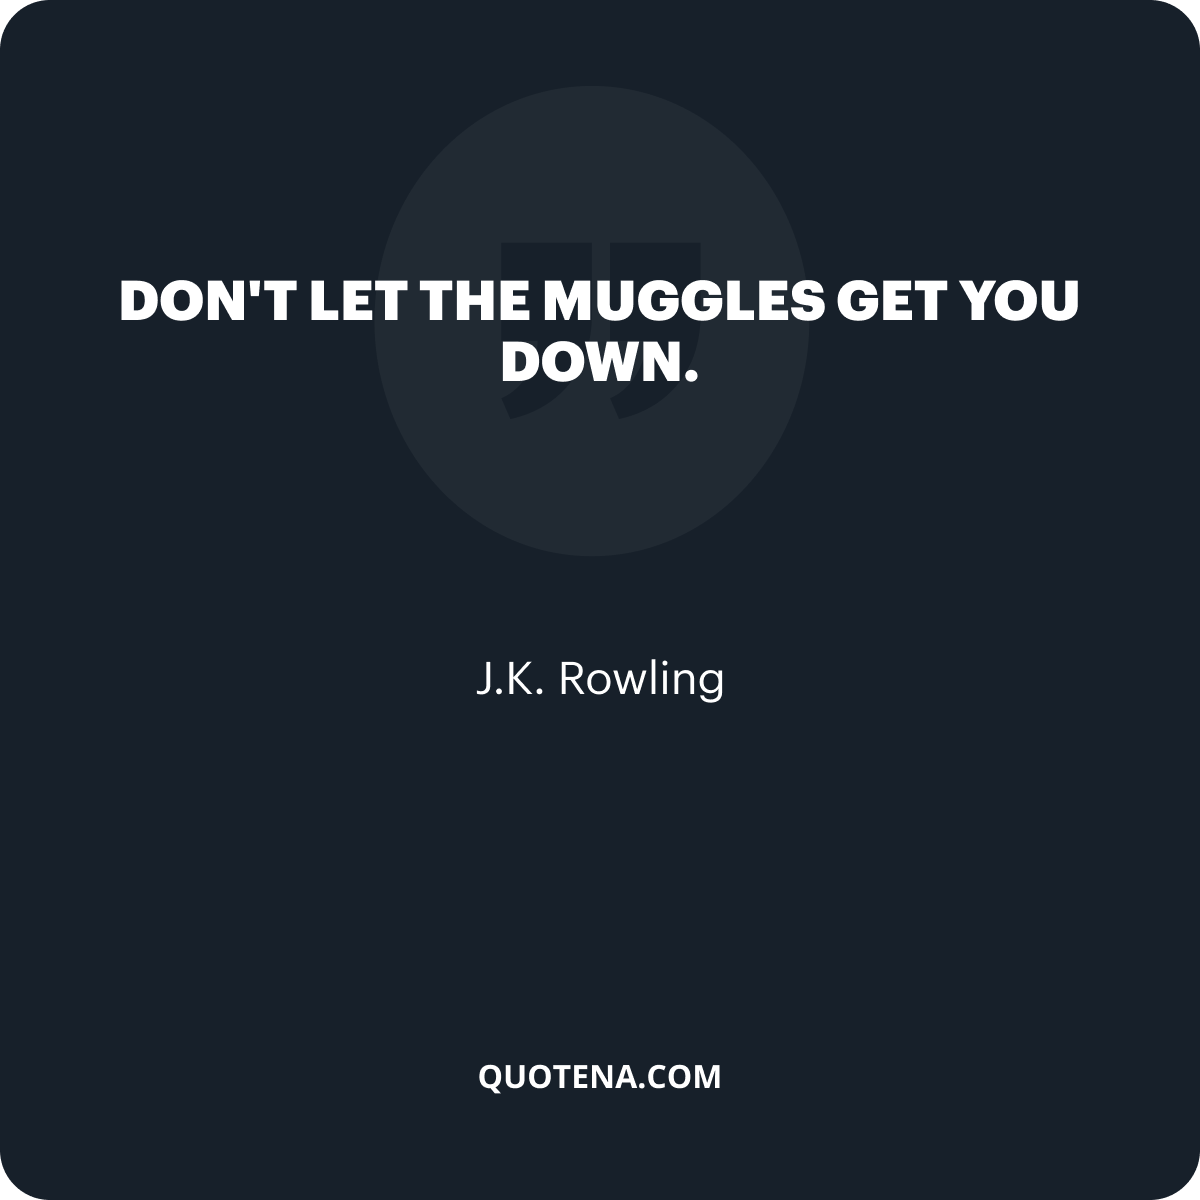 """""""Don't let the muggles get you down."""" – J.K. Rowling"""